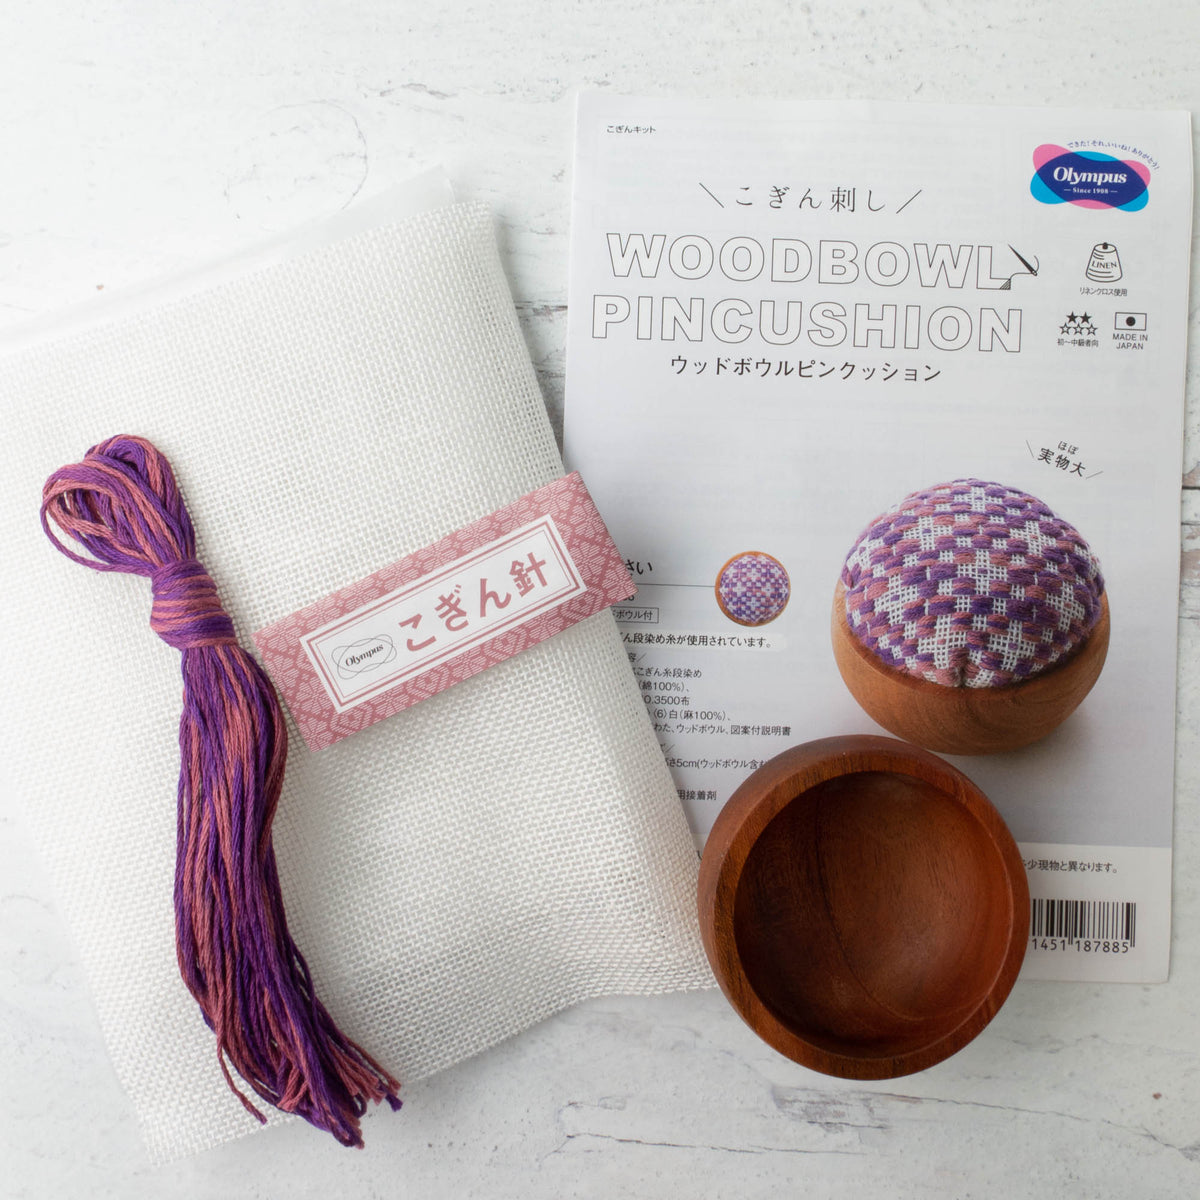 Kogin Sashiko Wooden Pincushion Kit - Raspberry Cross (88)